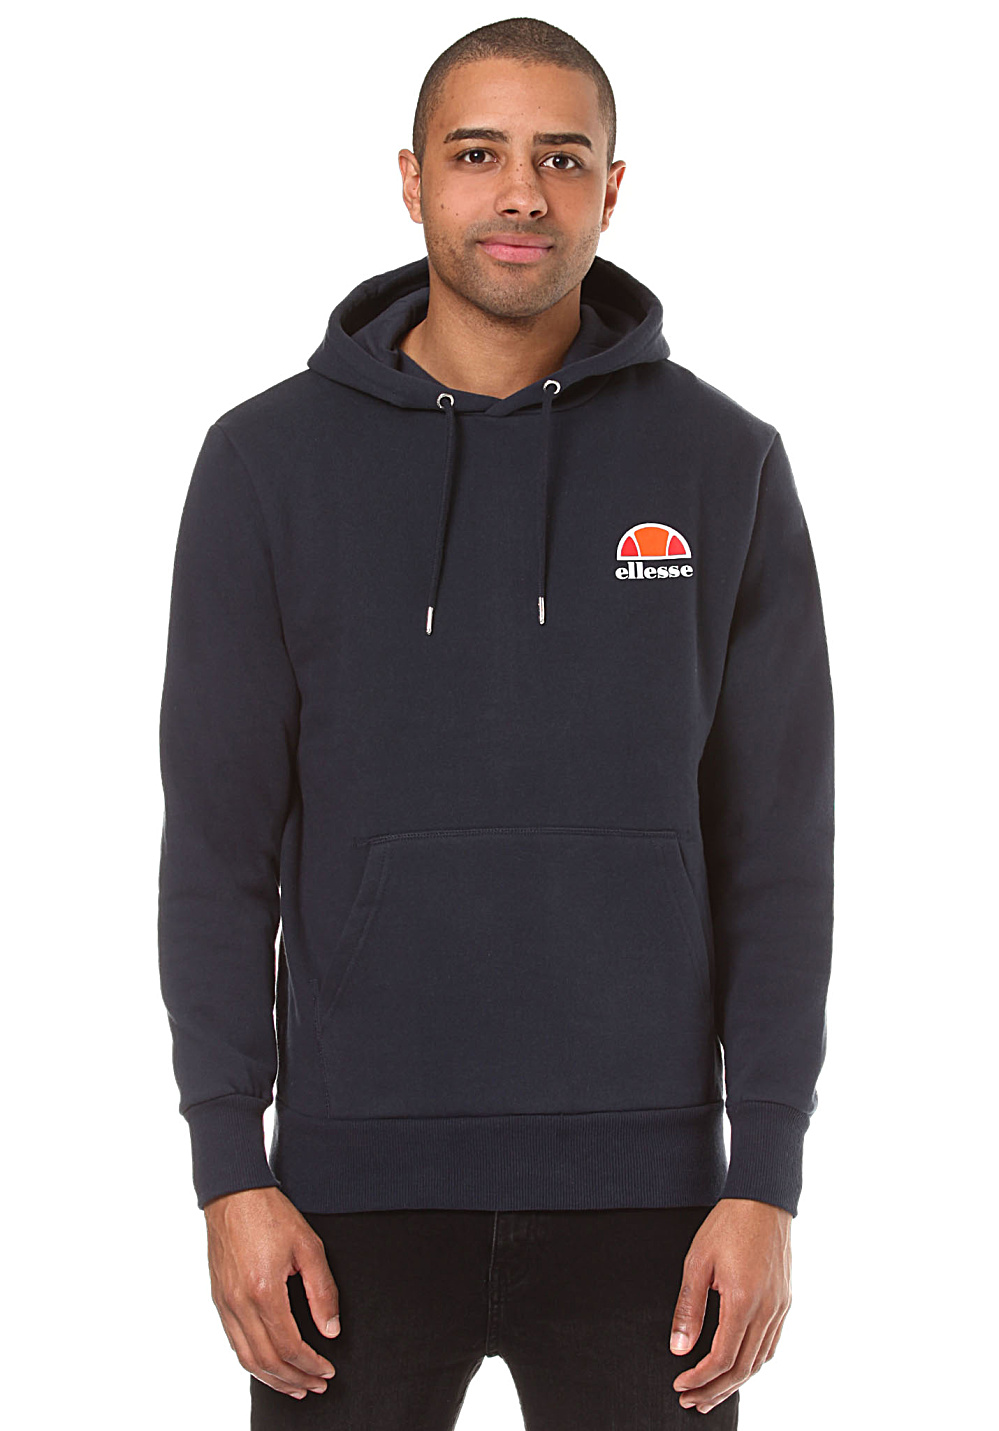 a635f0f7 ELLESSE Toce - Hooded Sweatshirt for Men - Blue